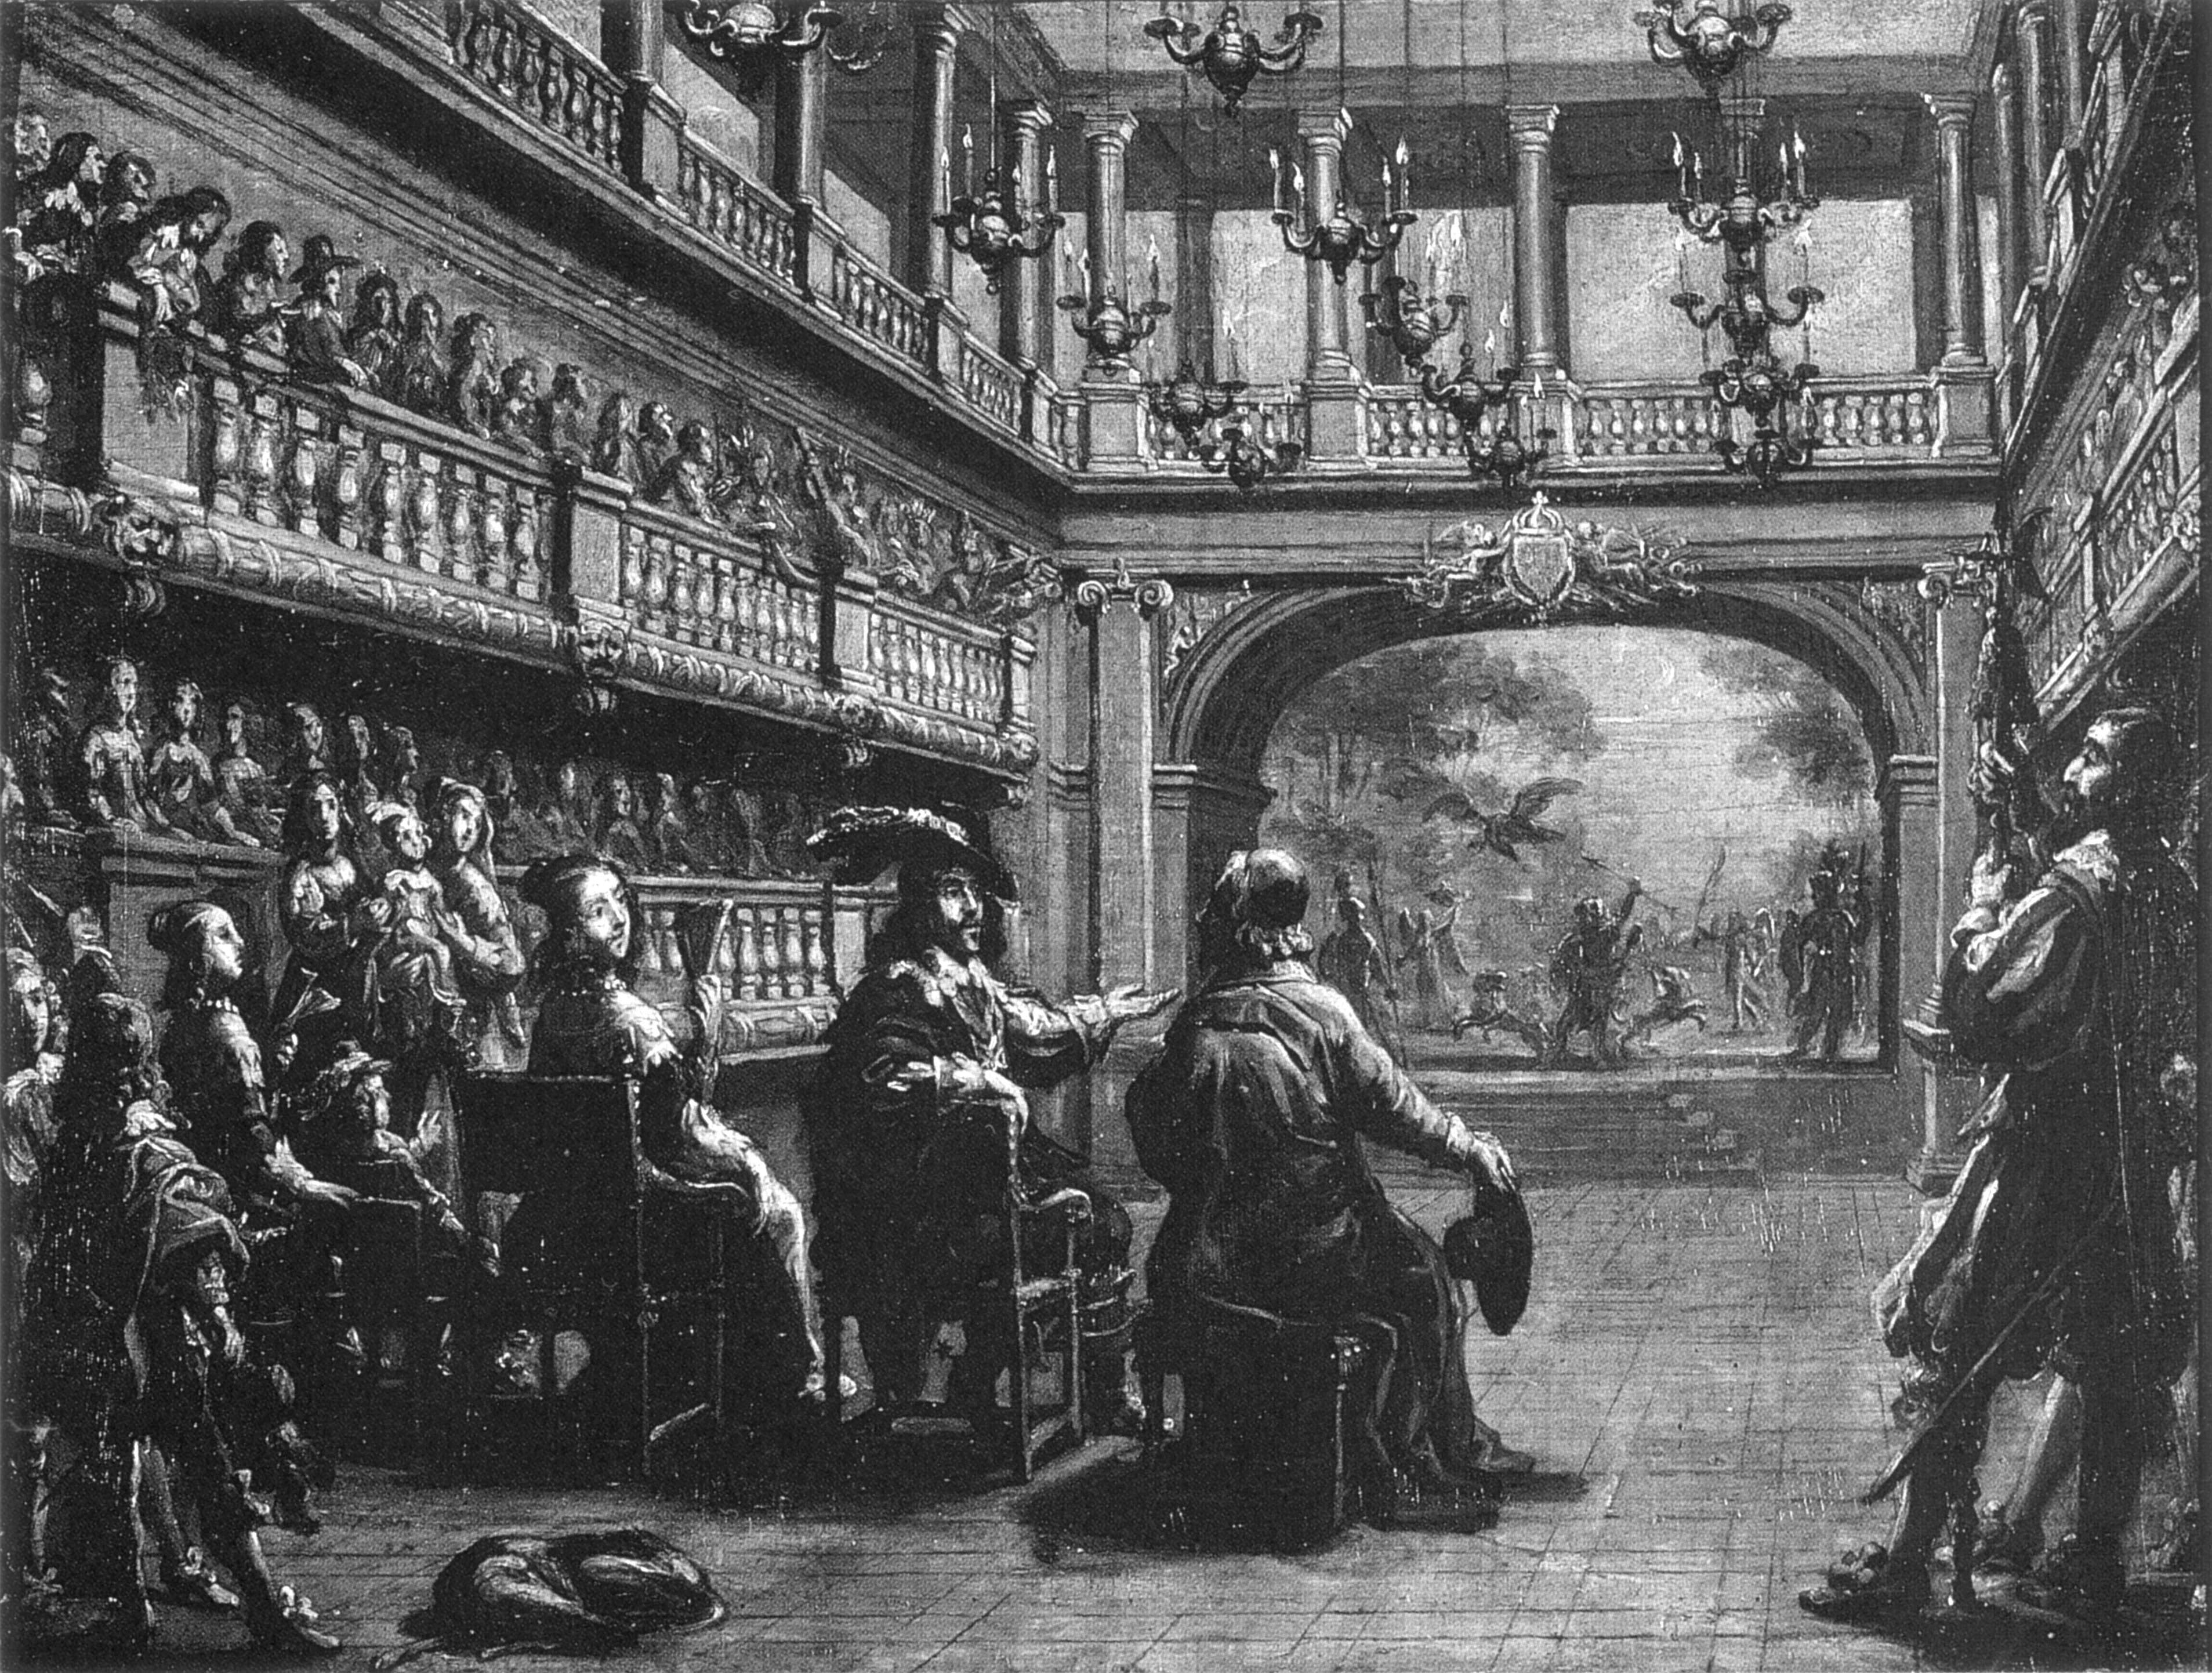 Salle_du_Palais-Cardinal_with_Richelieu_1641_-_Goldfarb_2002_p240_(adjusted)